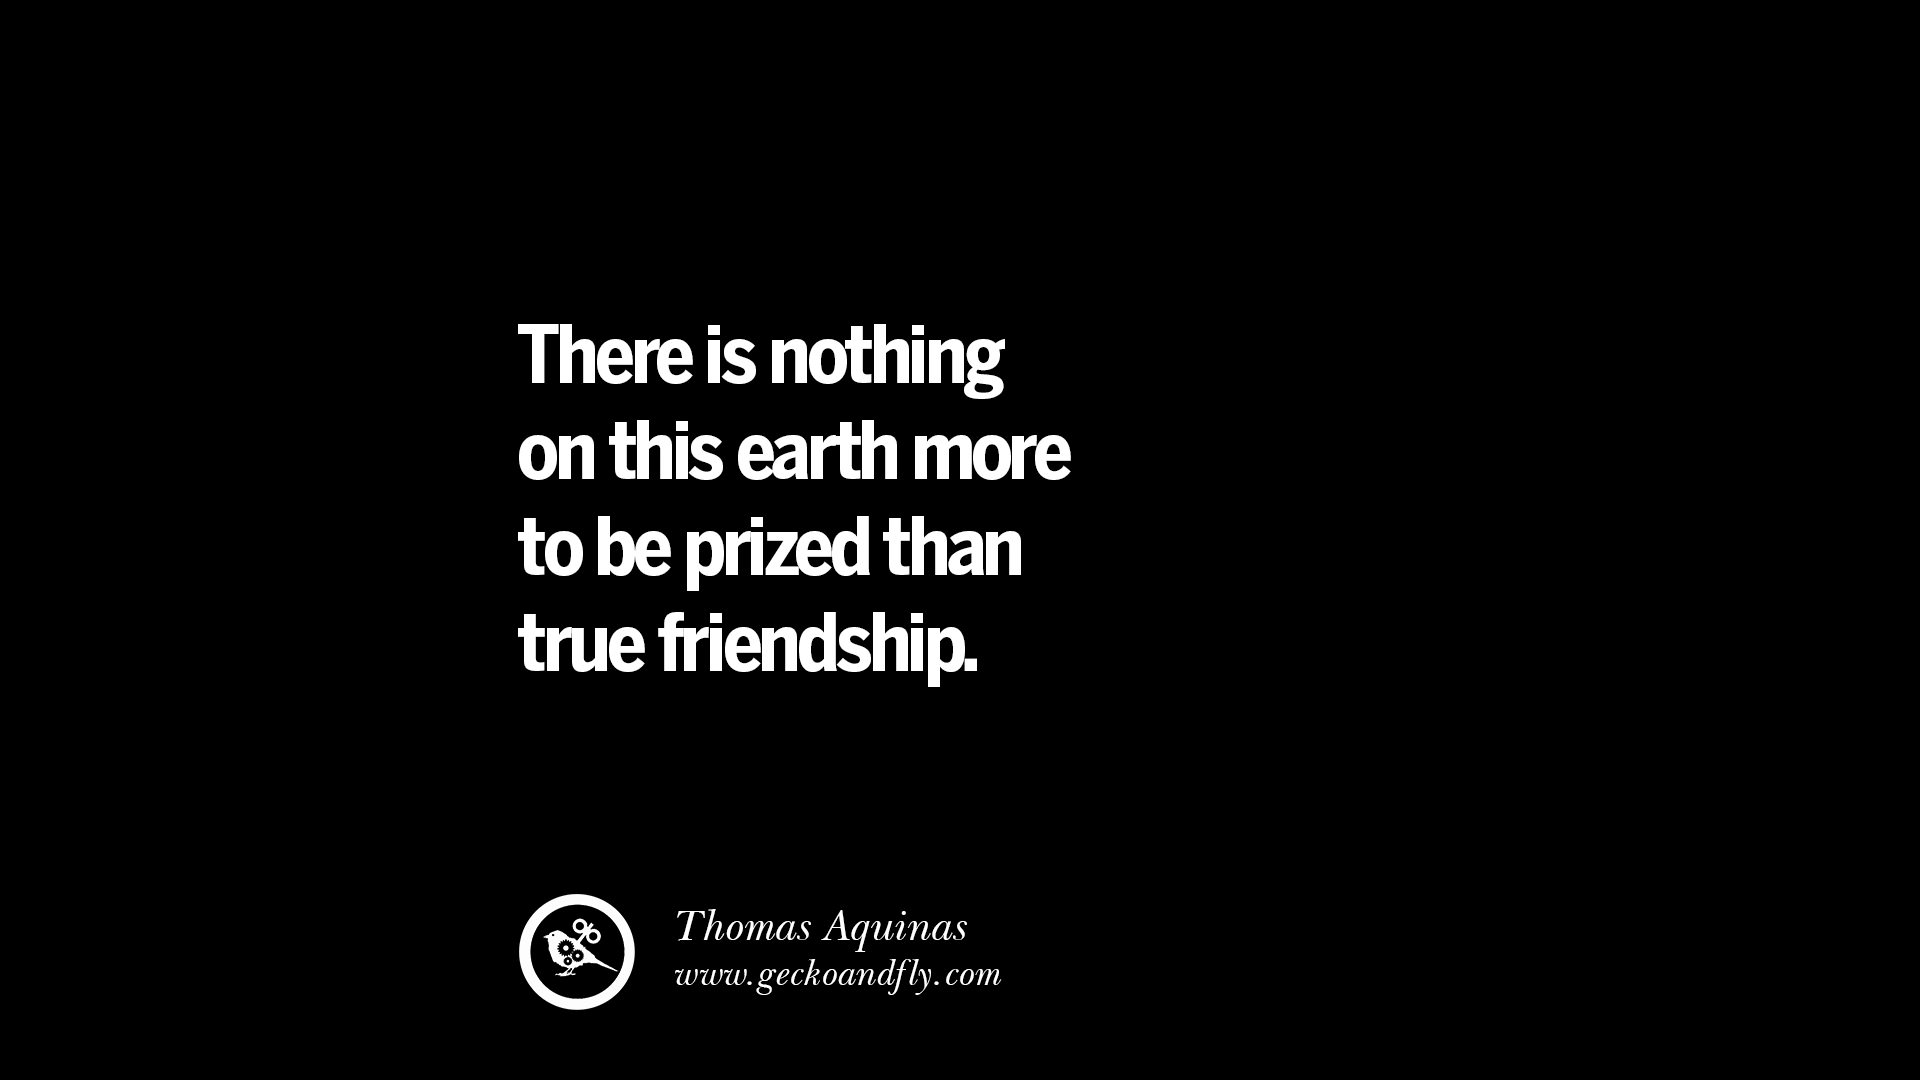 Tagalog Quotes About Love And Friendship Awesome 20 Amazing Quotes About Friendship Love And Friends  Geckoandfly 2018